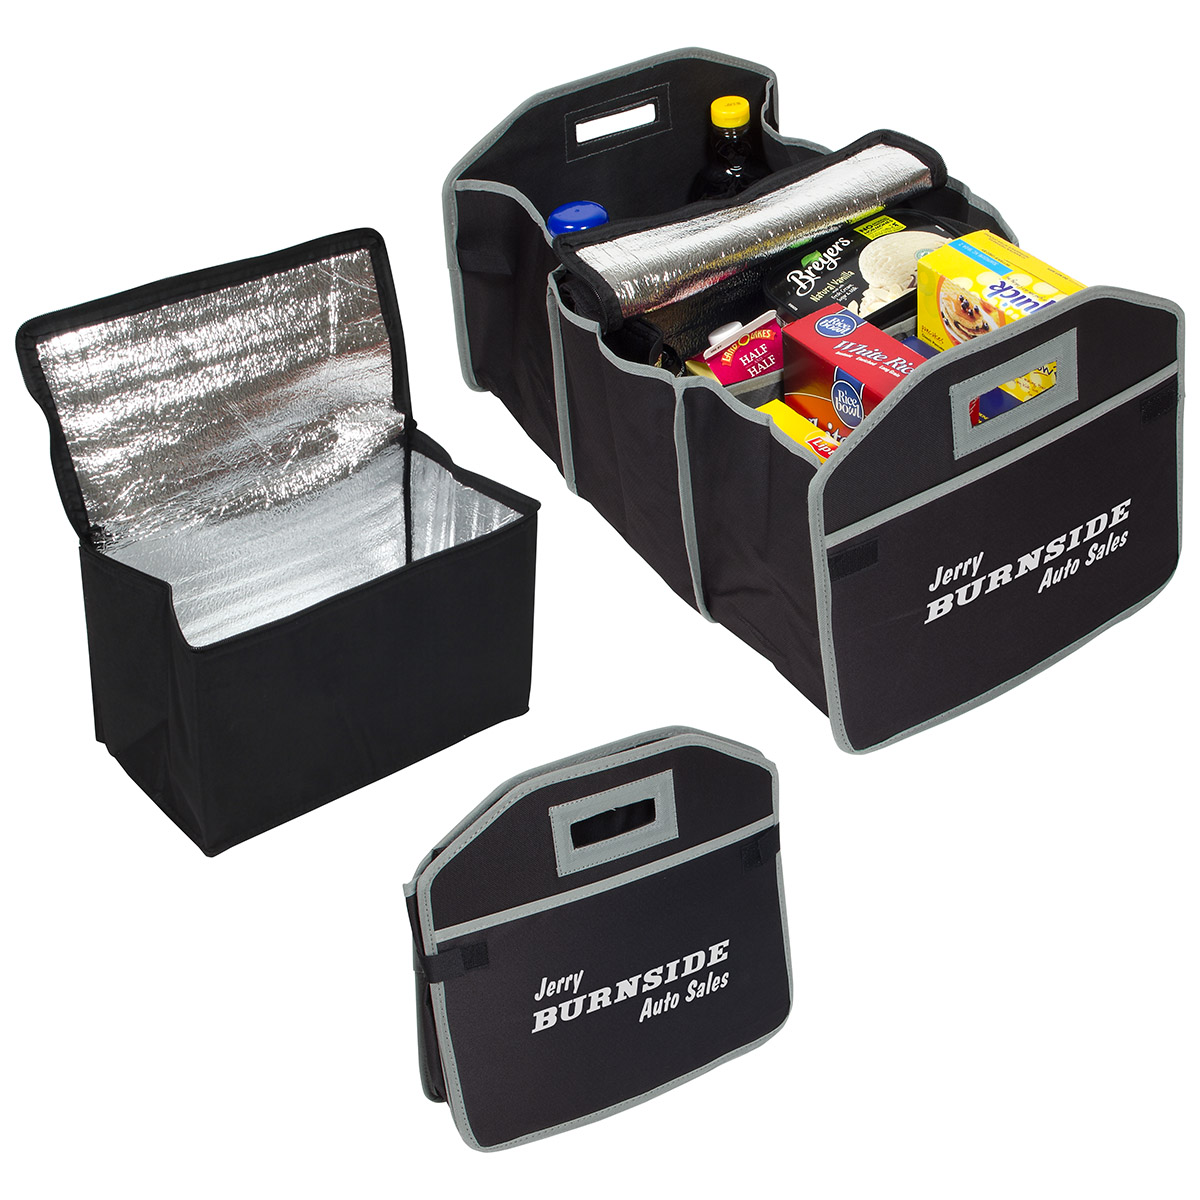 Cargo Organizer w/ Cooler Bag, WBA-CO15 - 1 Colour Imprint